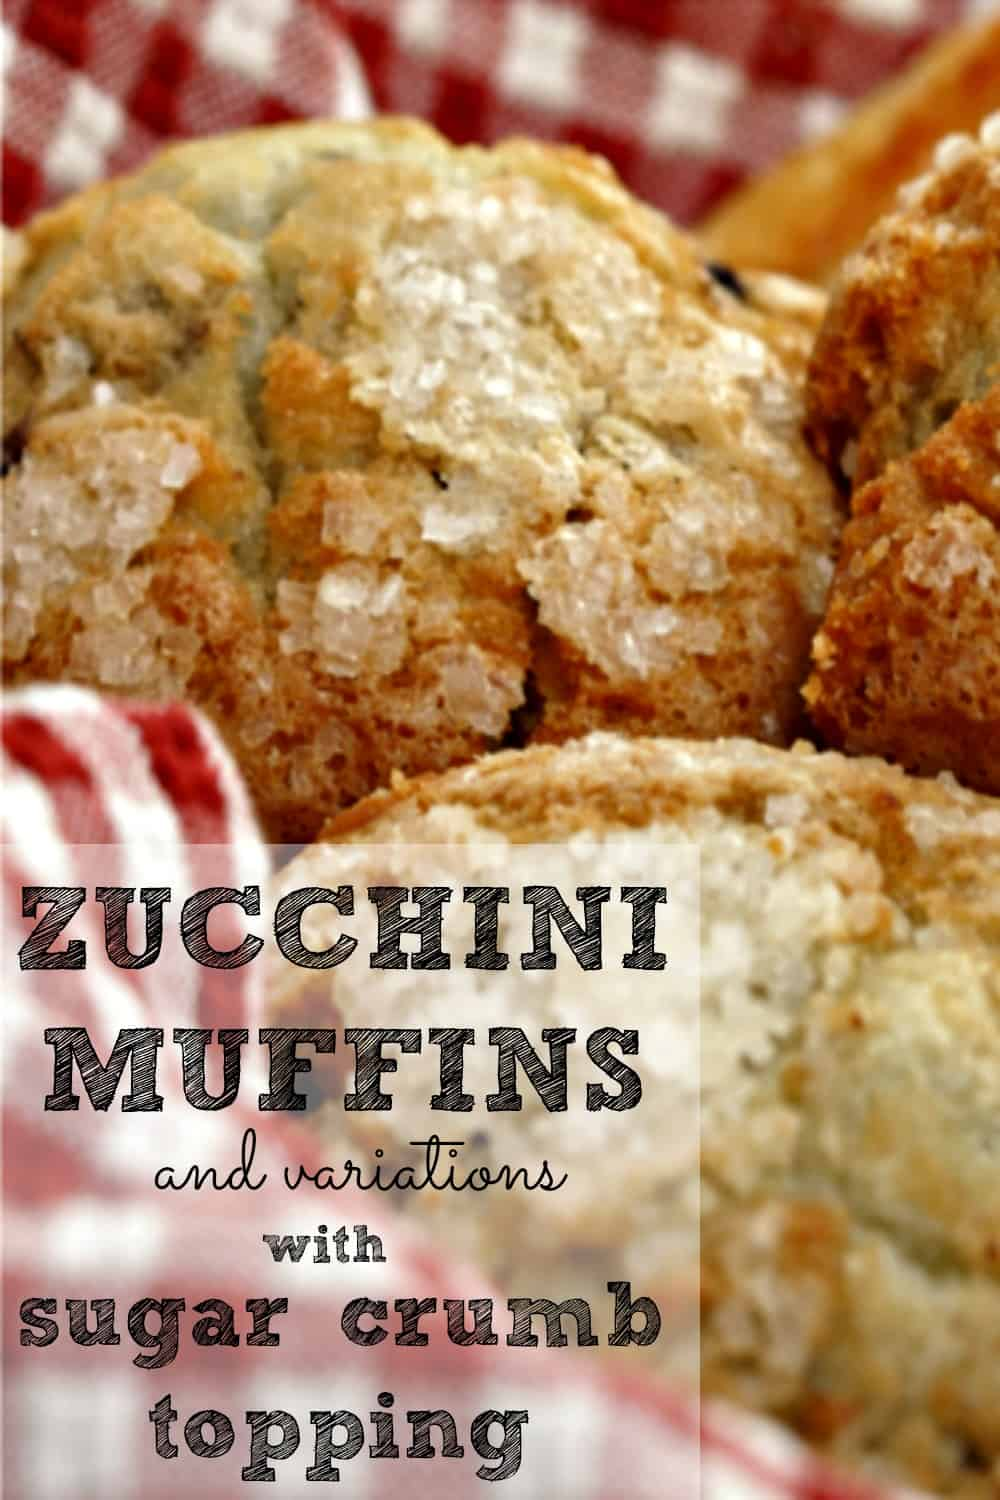 Zucchini Muffins with Sugar Crumb Topping recipe - Packed with zucchini, these are delicious muffins you can feel good about eating! #muffins #zucchini #breads #baking